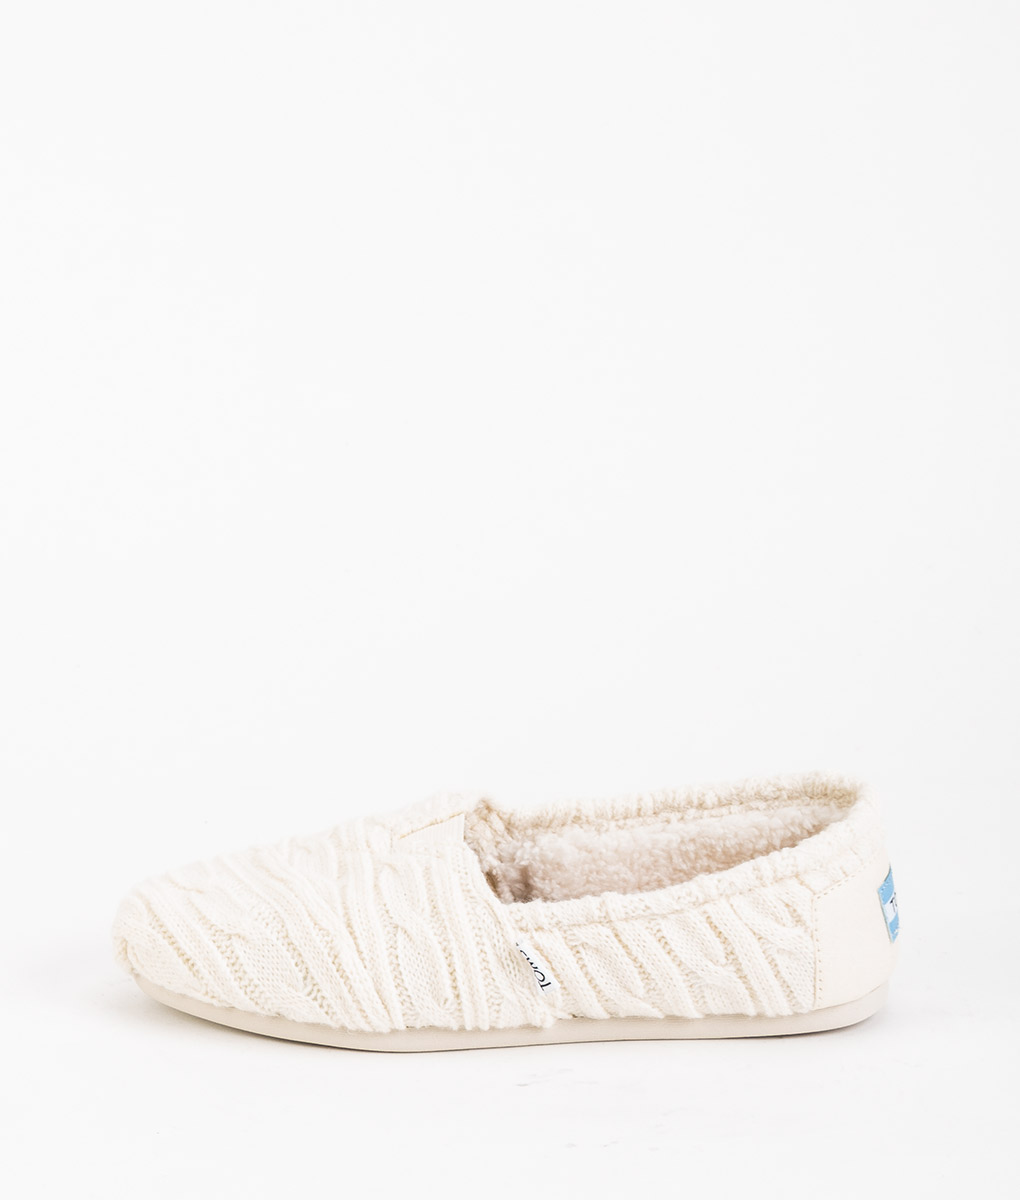 TOMS Women Espadrillas 8943 CLASSIC CABLE KNIT, Natural 59.99